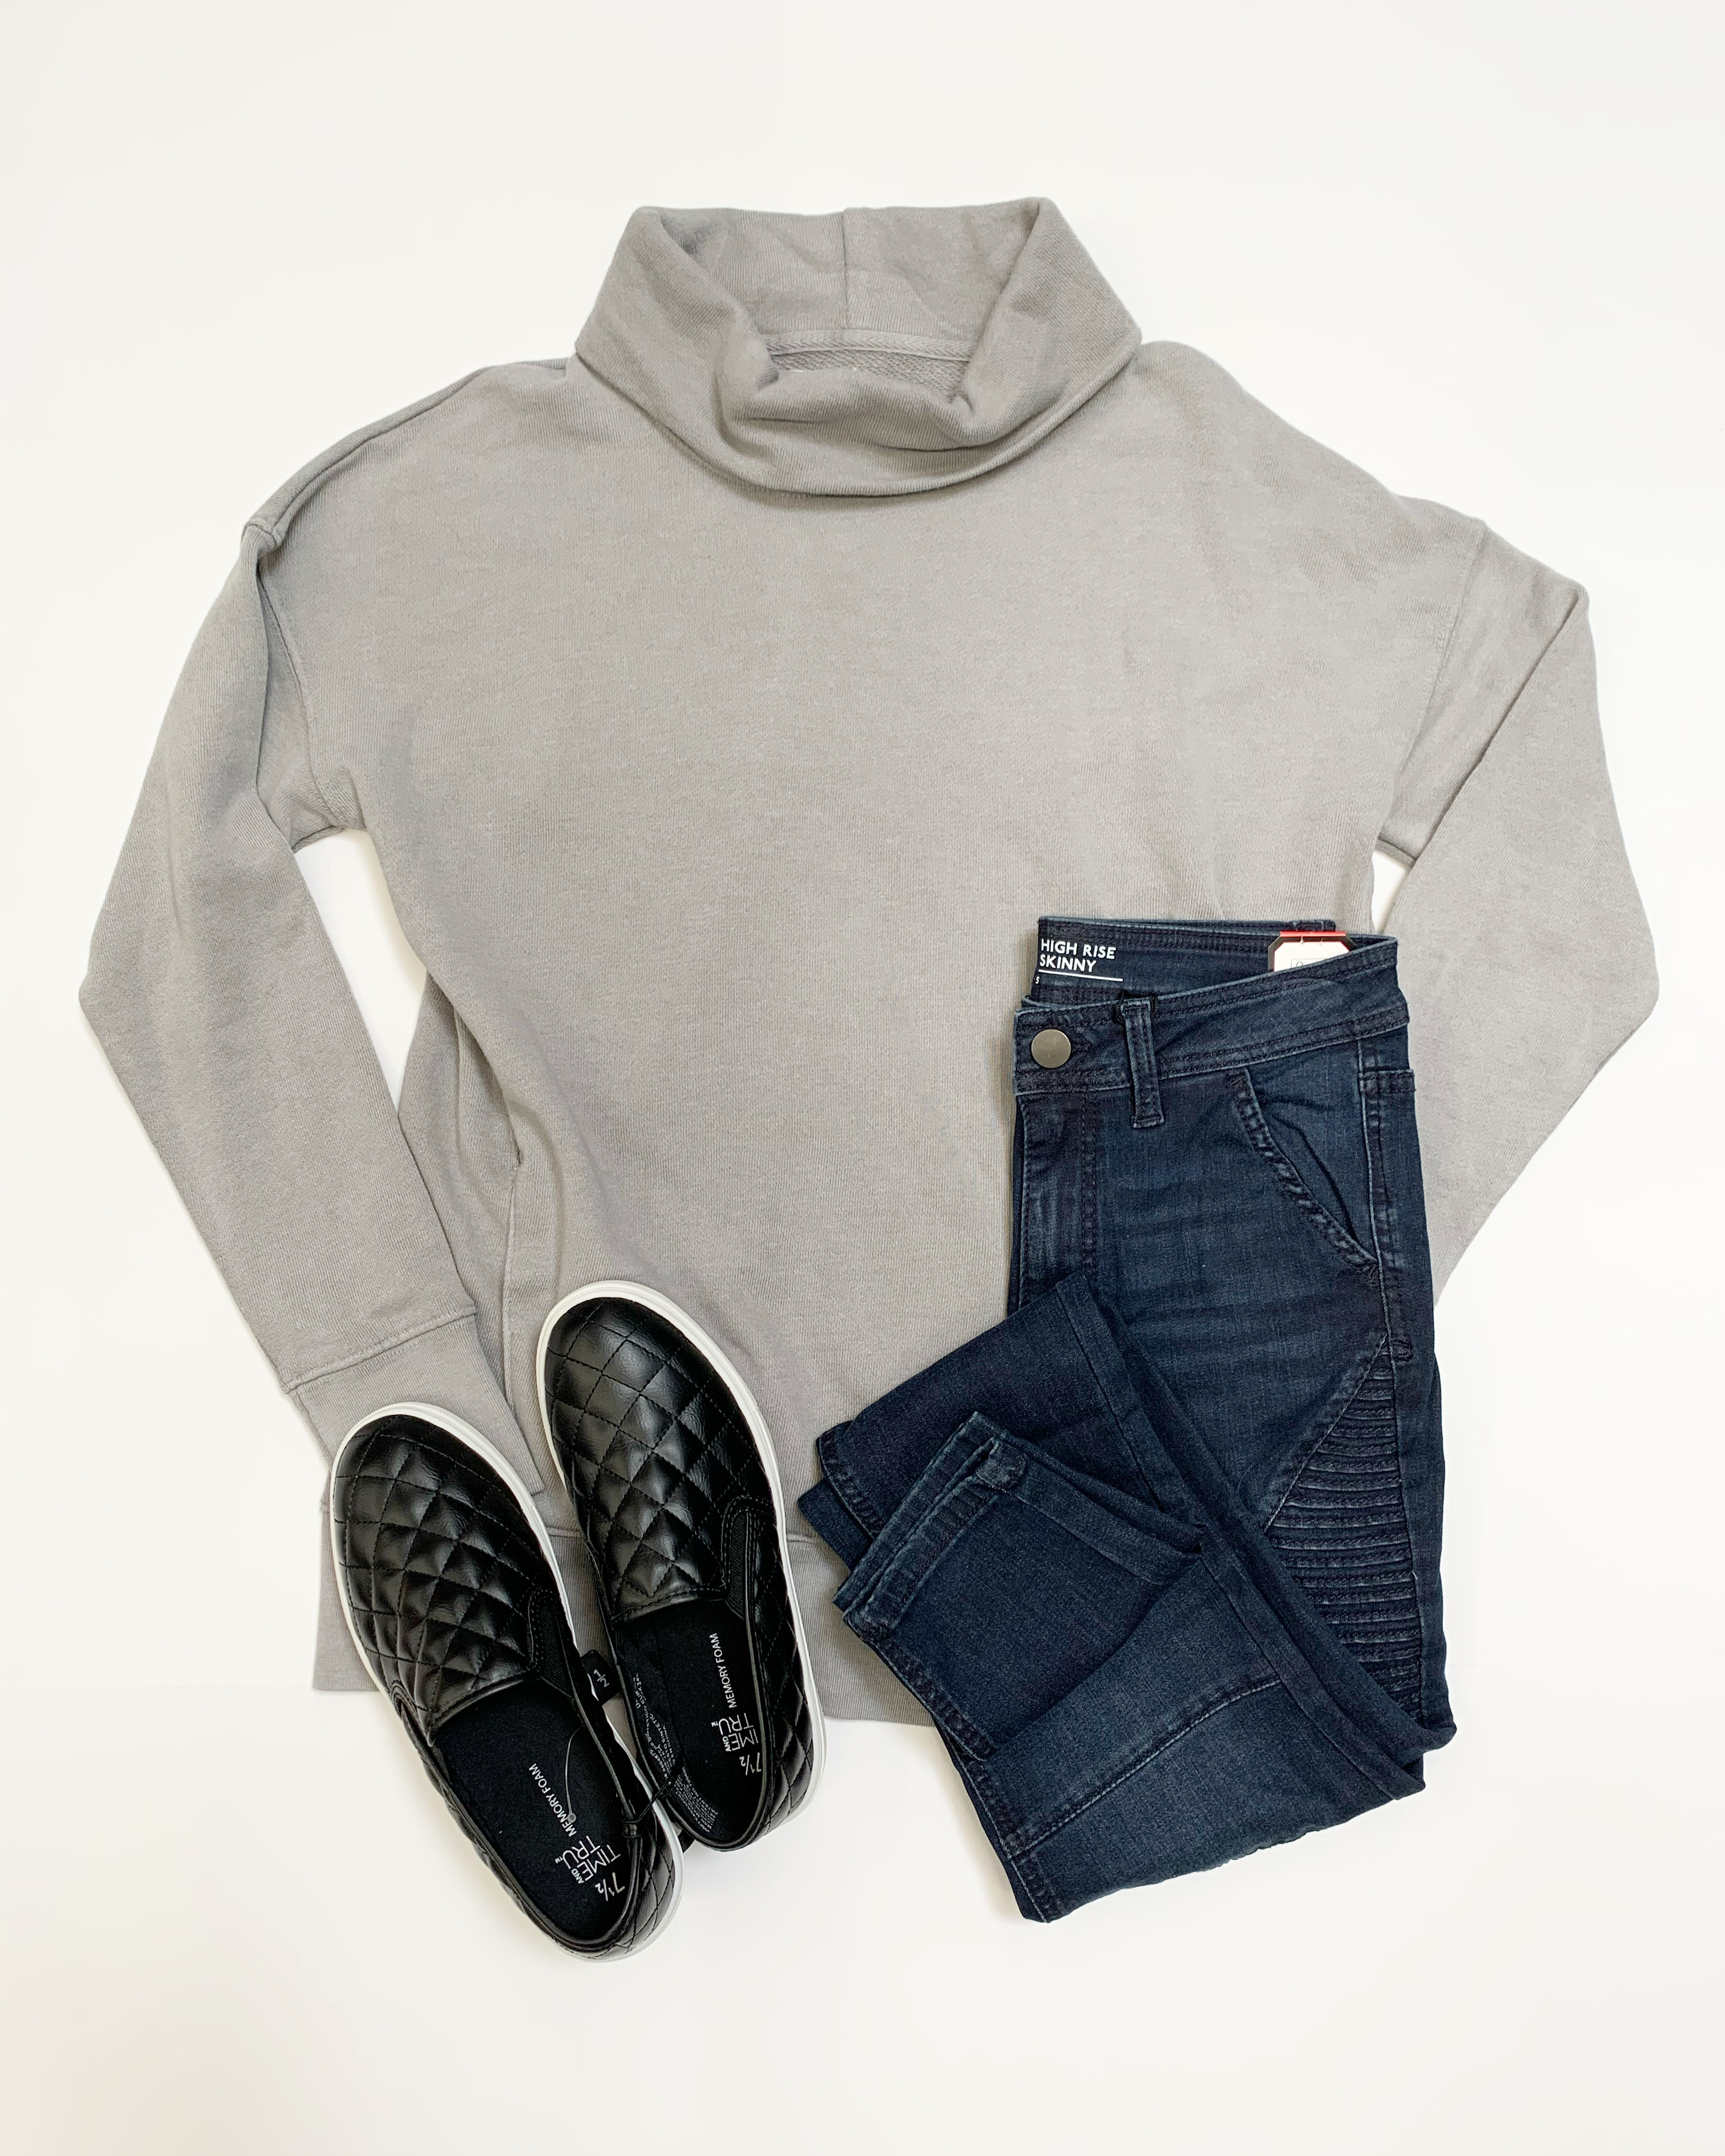 flat lay clothing photo with cowl neck sweatshirt and moto jeans